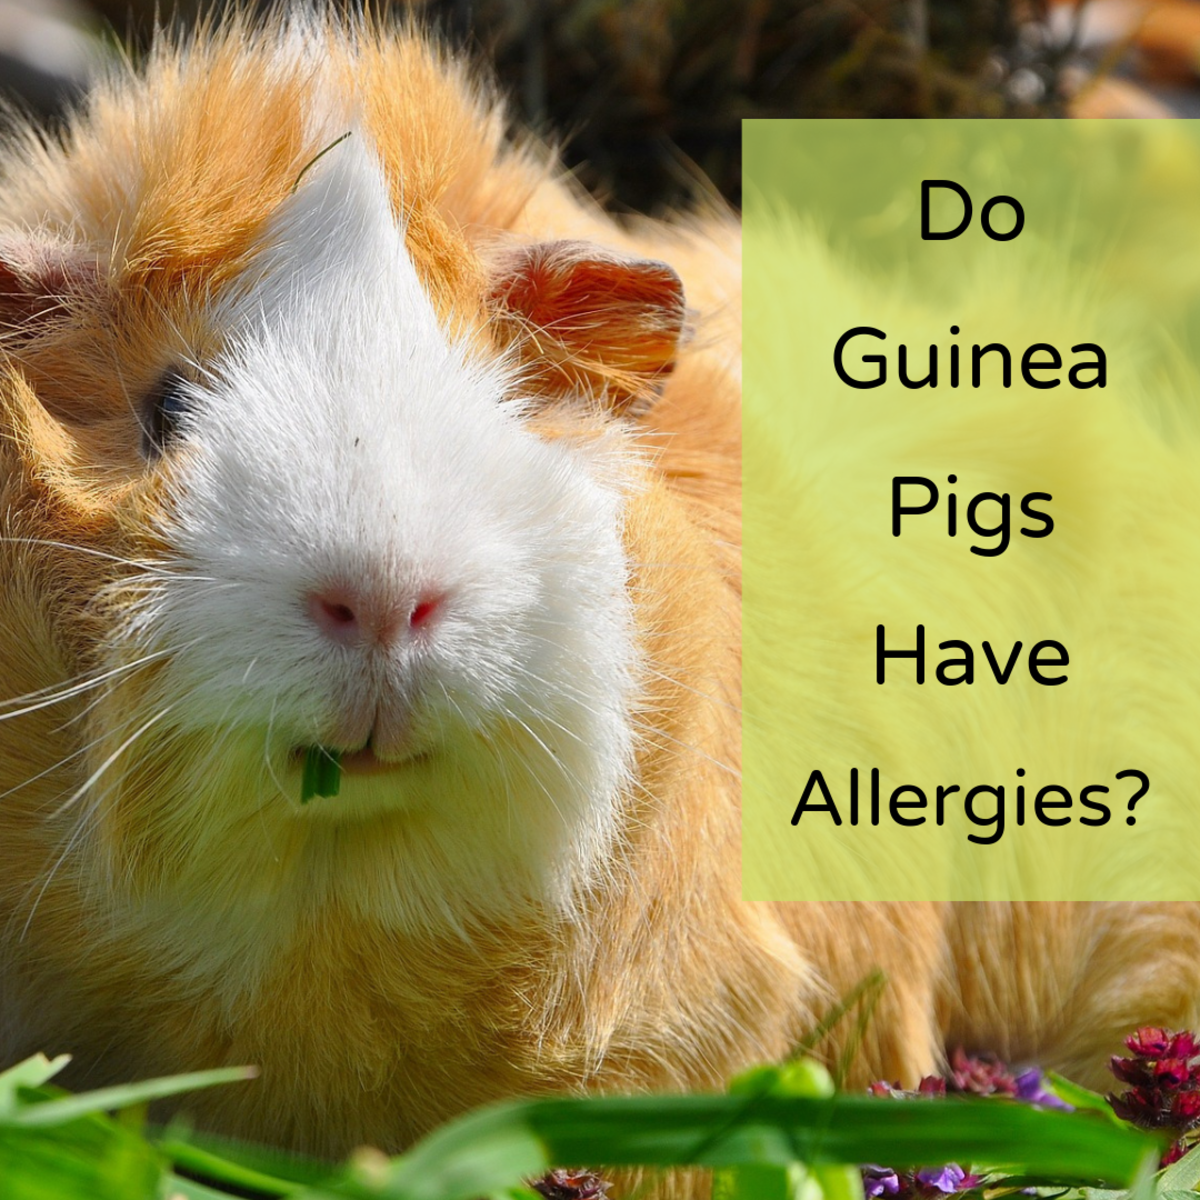 What Are Guinea Pigs Allergic To?